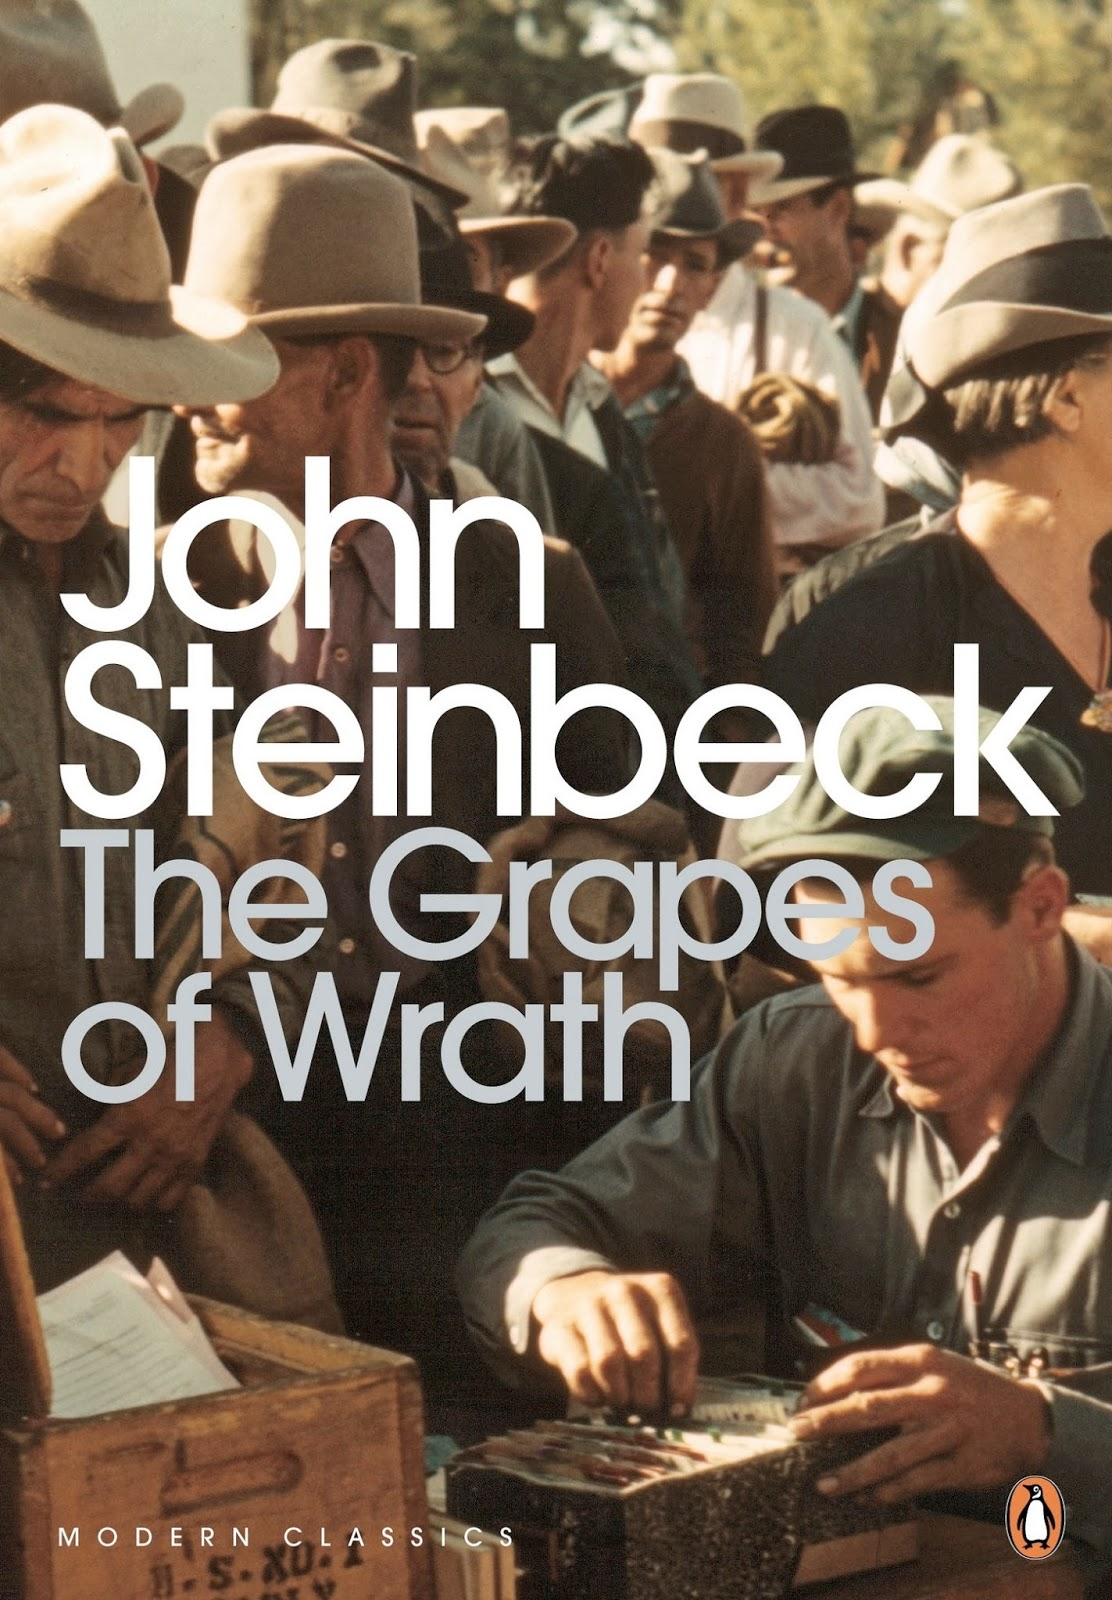 An analysis of migrants in the grapes of wrath by john steinbeck